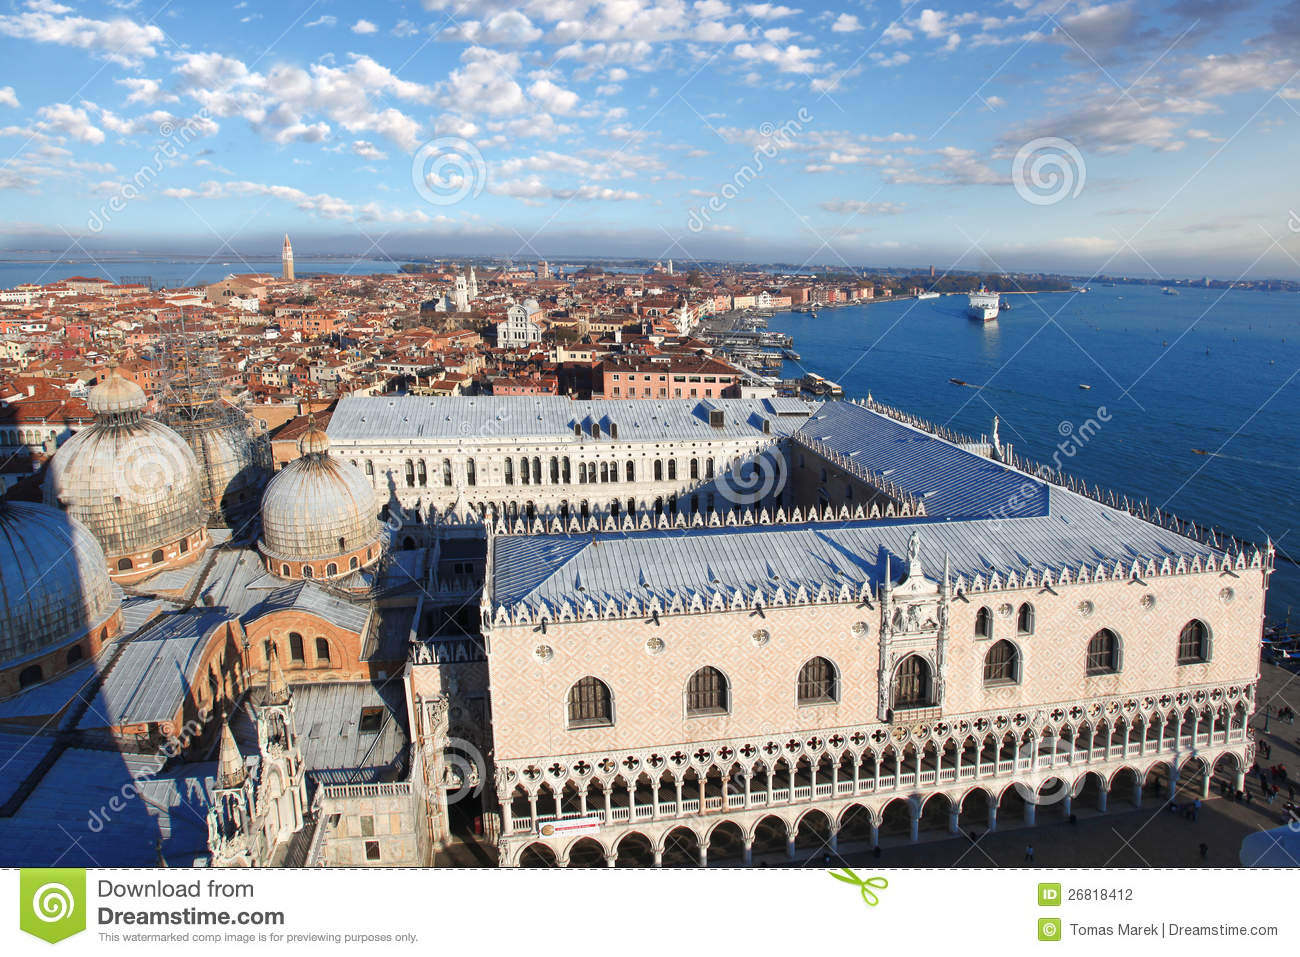 Italian House Plans Venice With Doge Palace In Italy Stock Photo Image 26818412